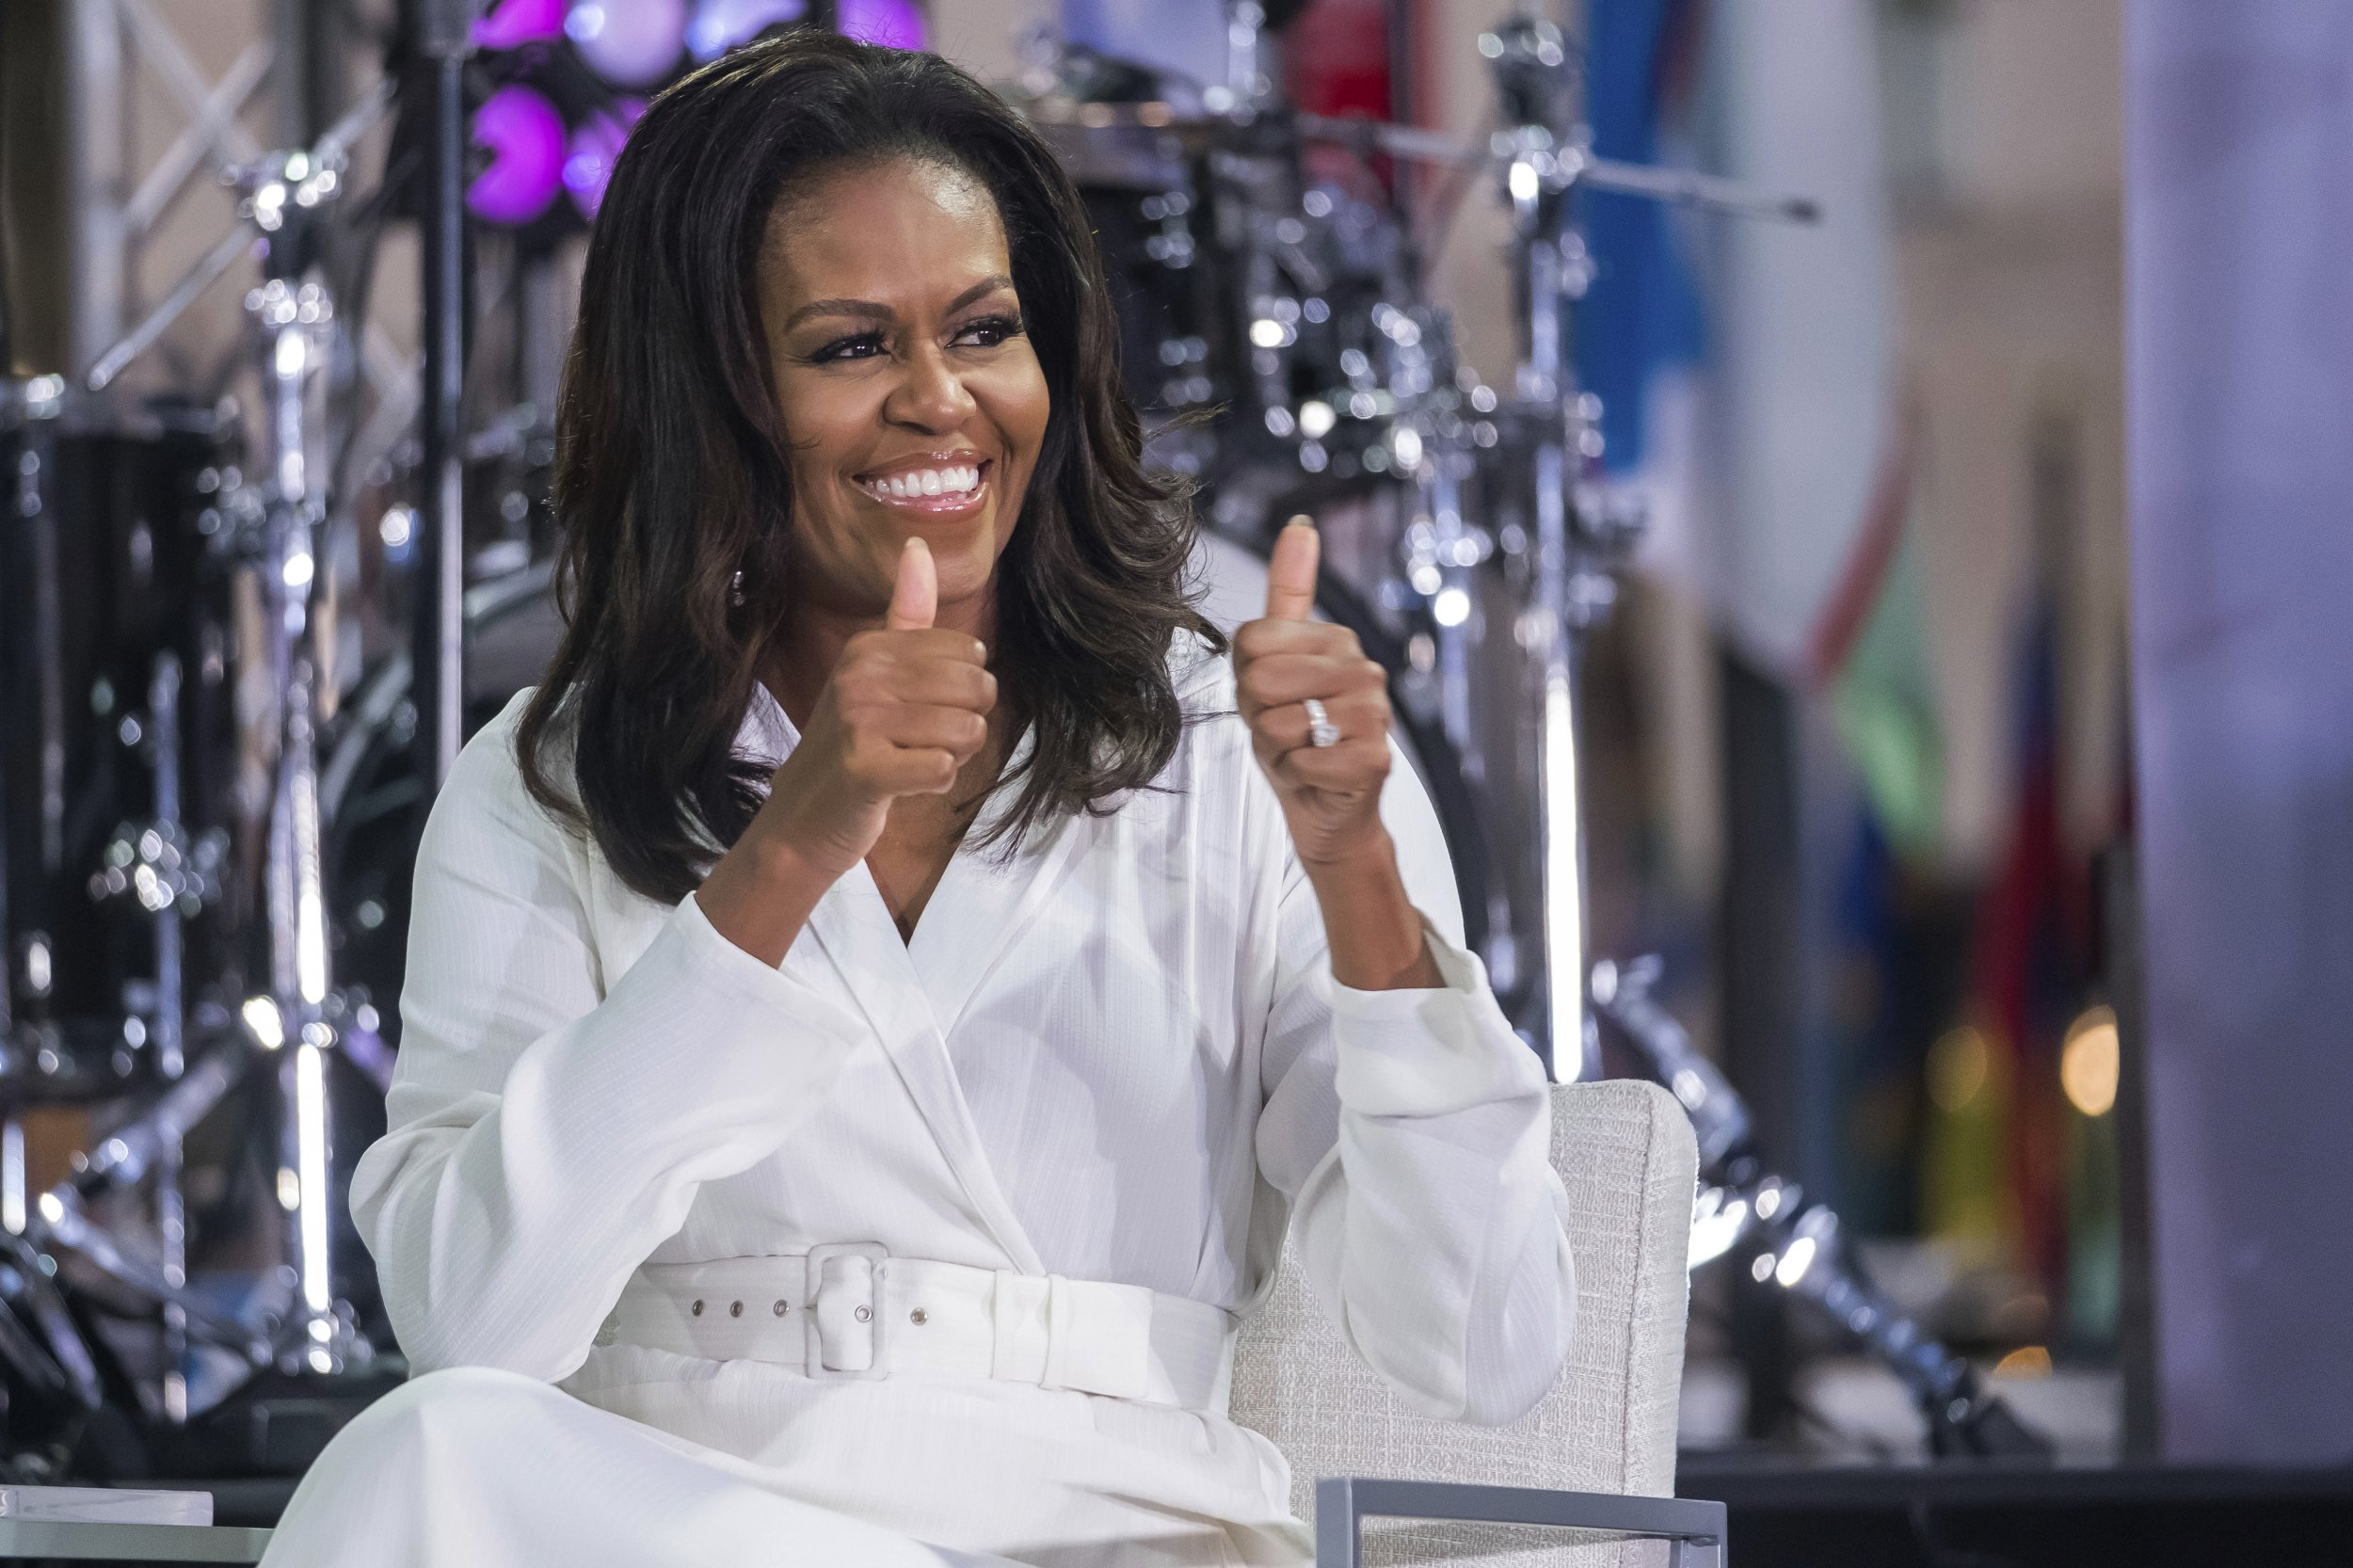 """Michelle Obama participates in the International Day of the Girl on NBC's """"Today"""" show at Rockefeller Plaza on Thursday, Oct. 11, 2018, in New York. (Photo by Charles Sykes/Invision/AP)"""